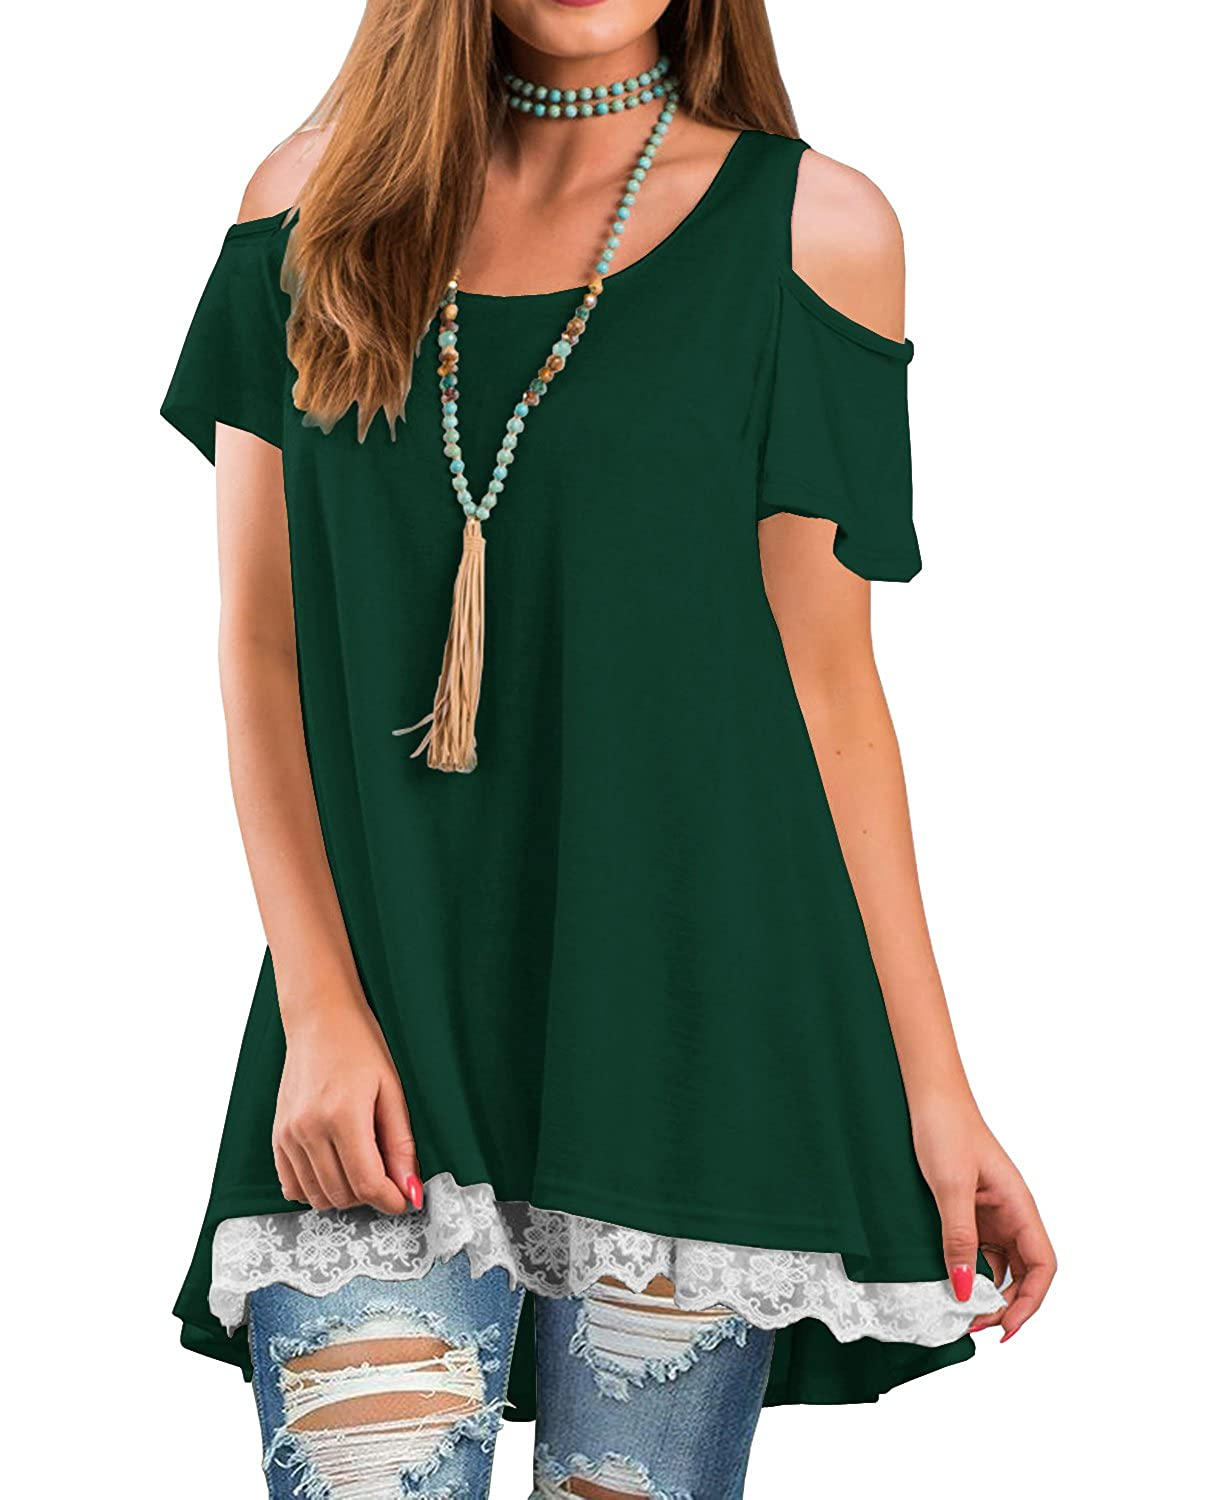 bacbe827f5696 Top 10 wholesale Ladies Cold Shoulder Tops - Chinabrands.com